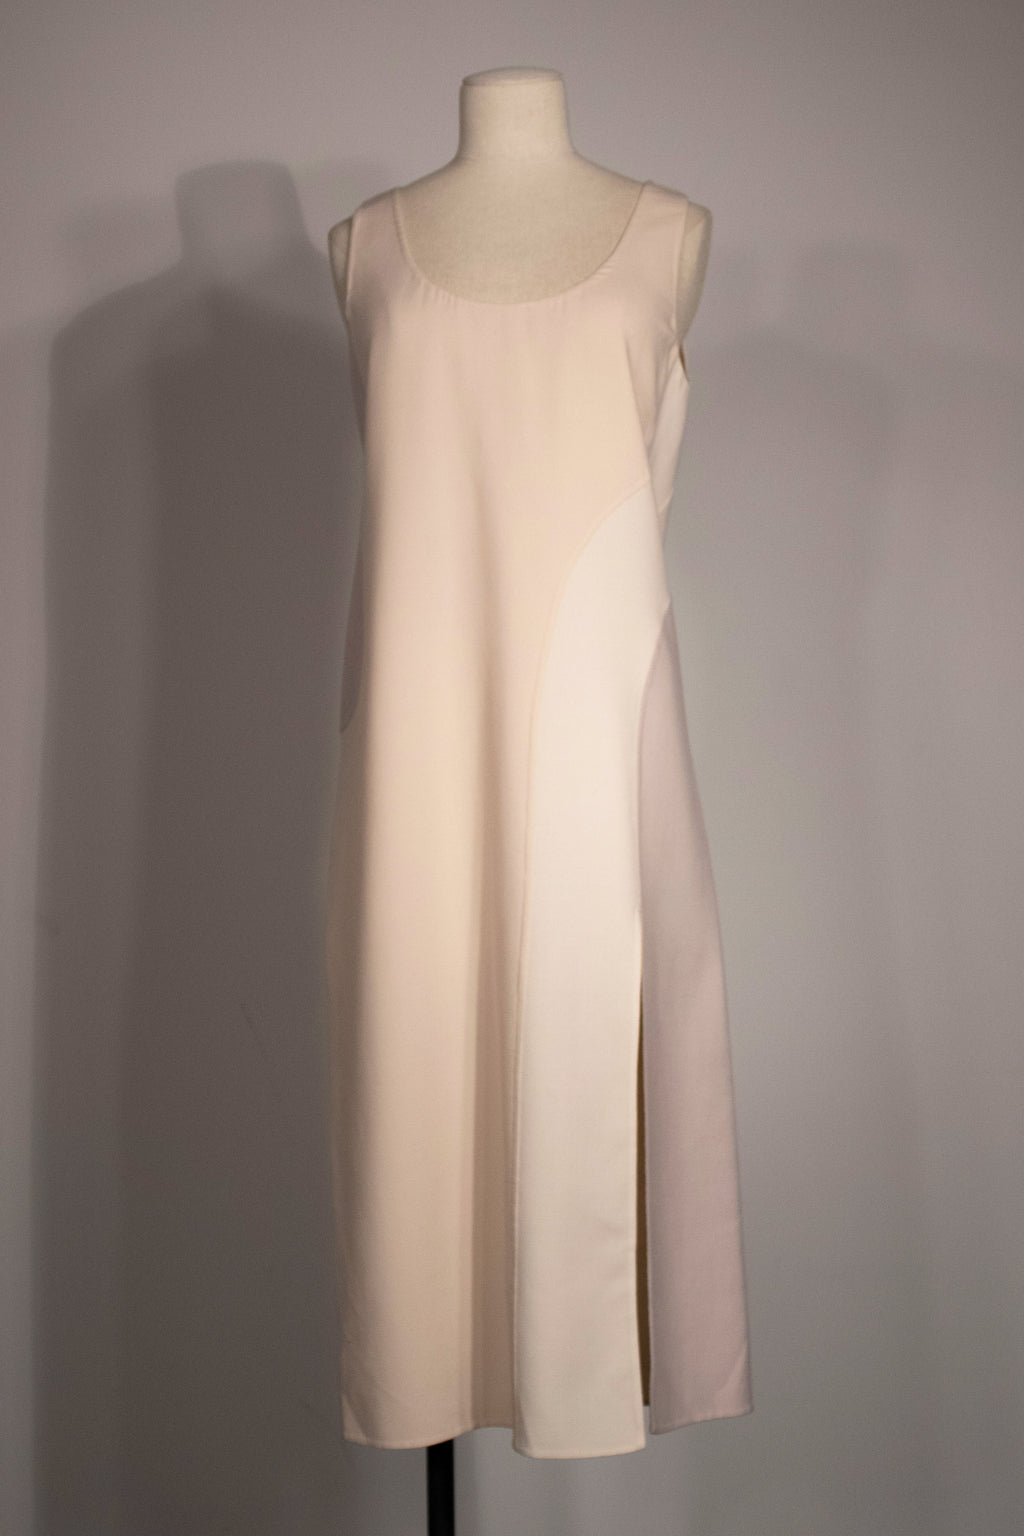 Marc Jacobs cream wool tank dress